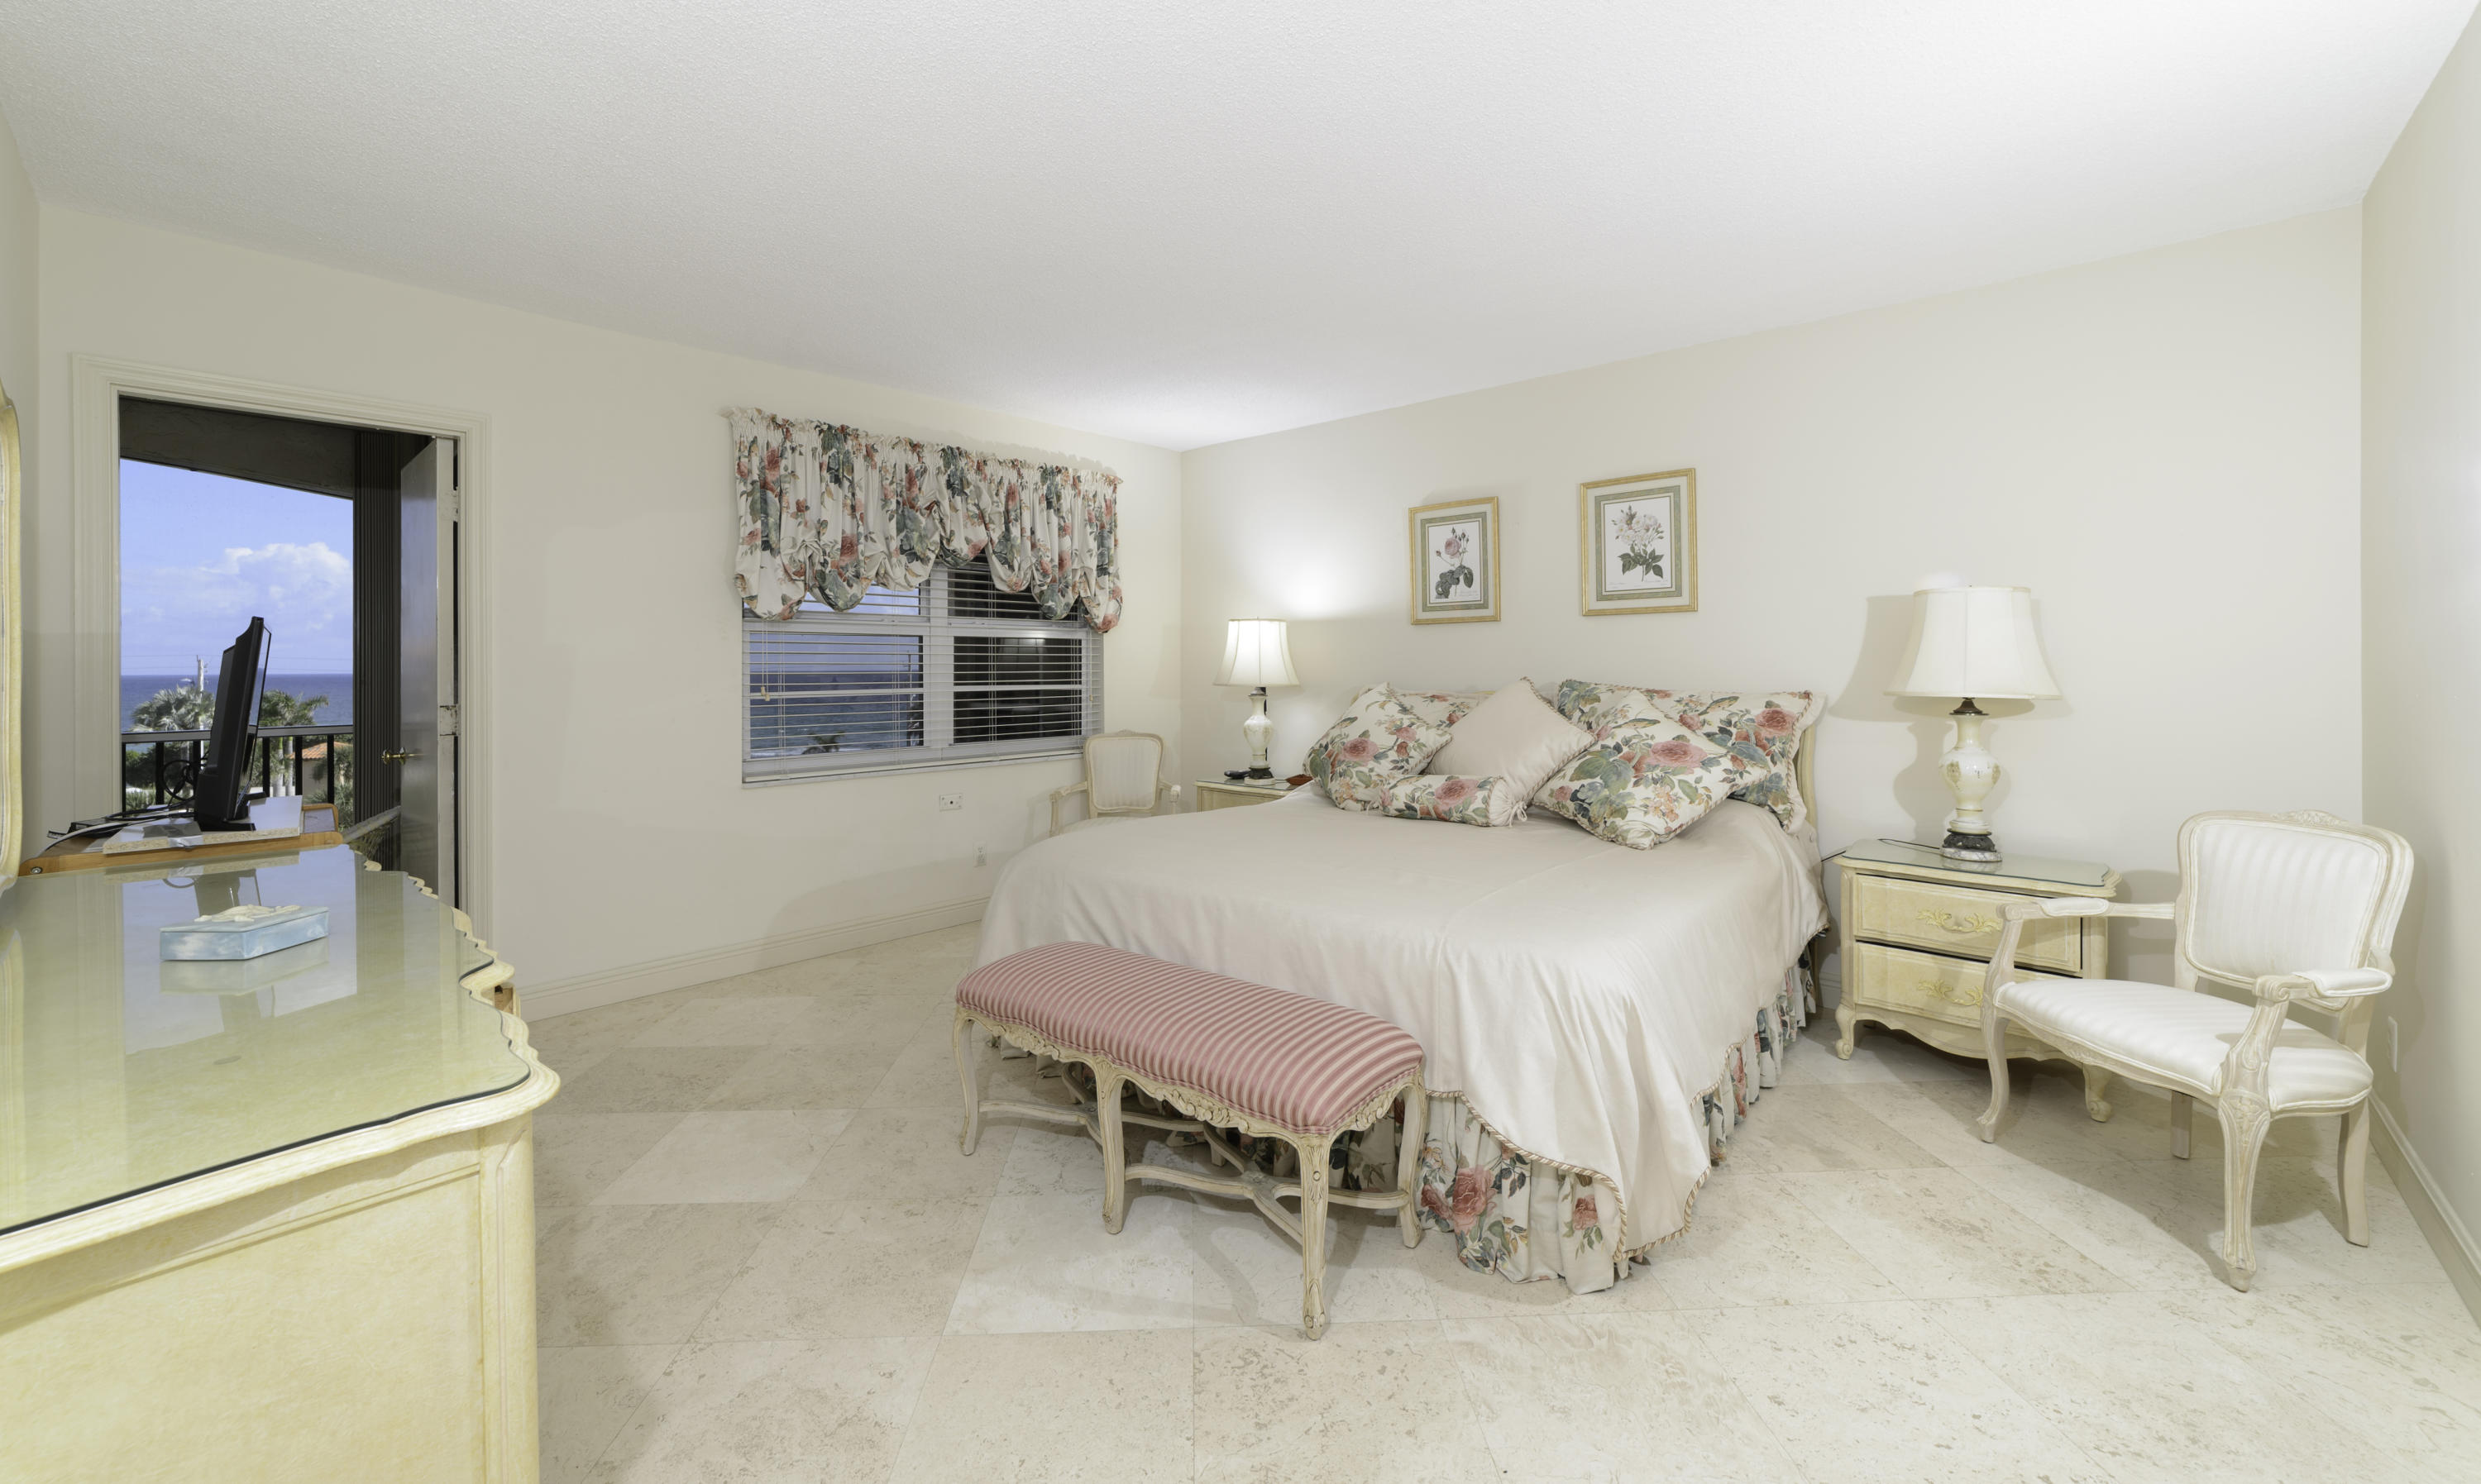 2871 N Ocean Boulevard D518 Boca Raton, FL 33431 small photo 9